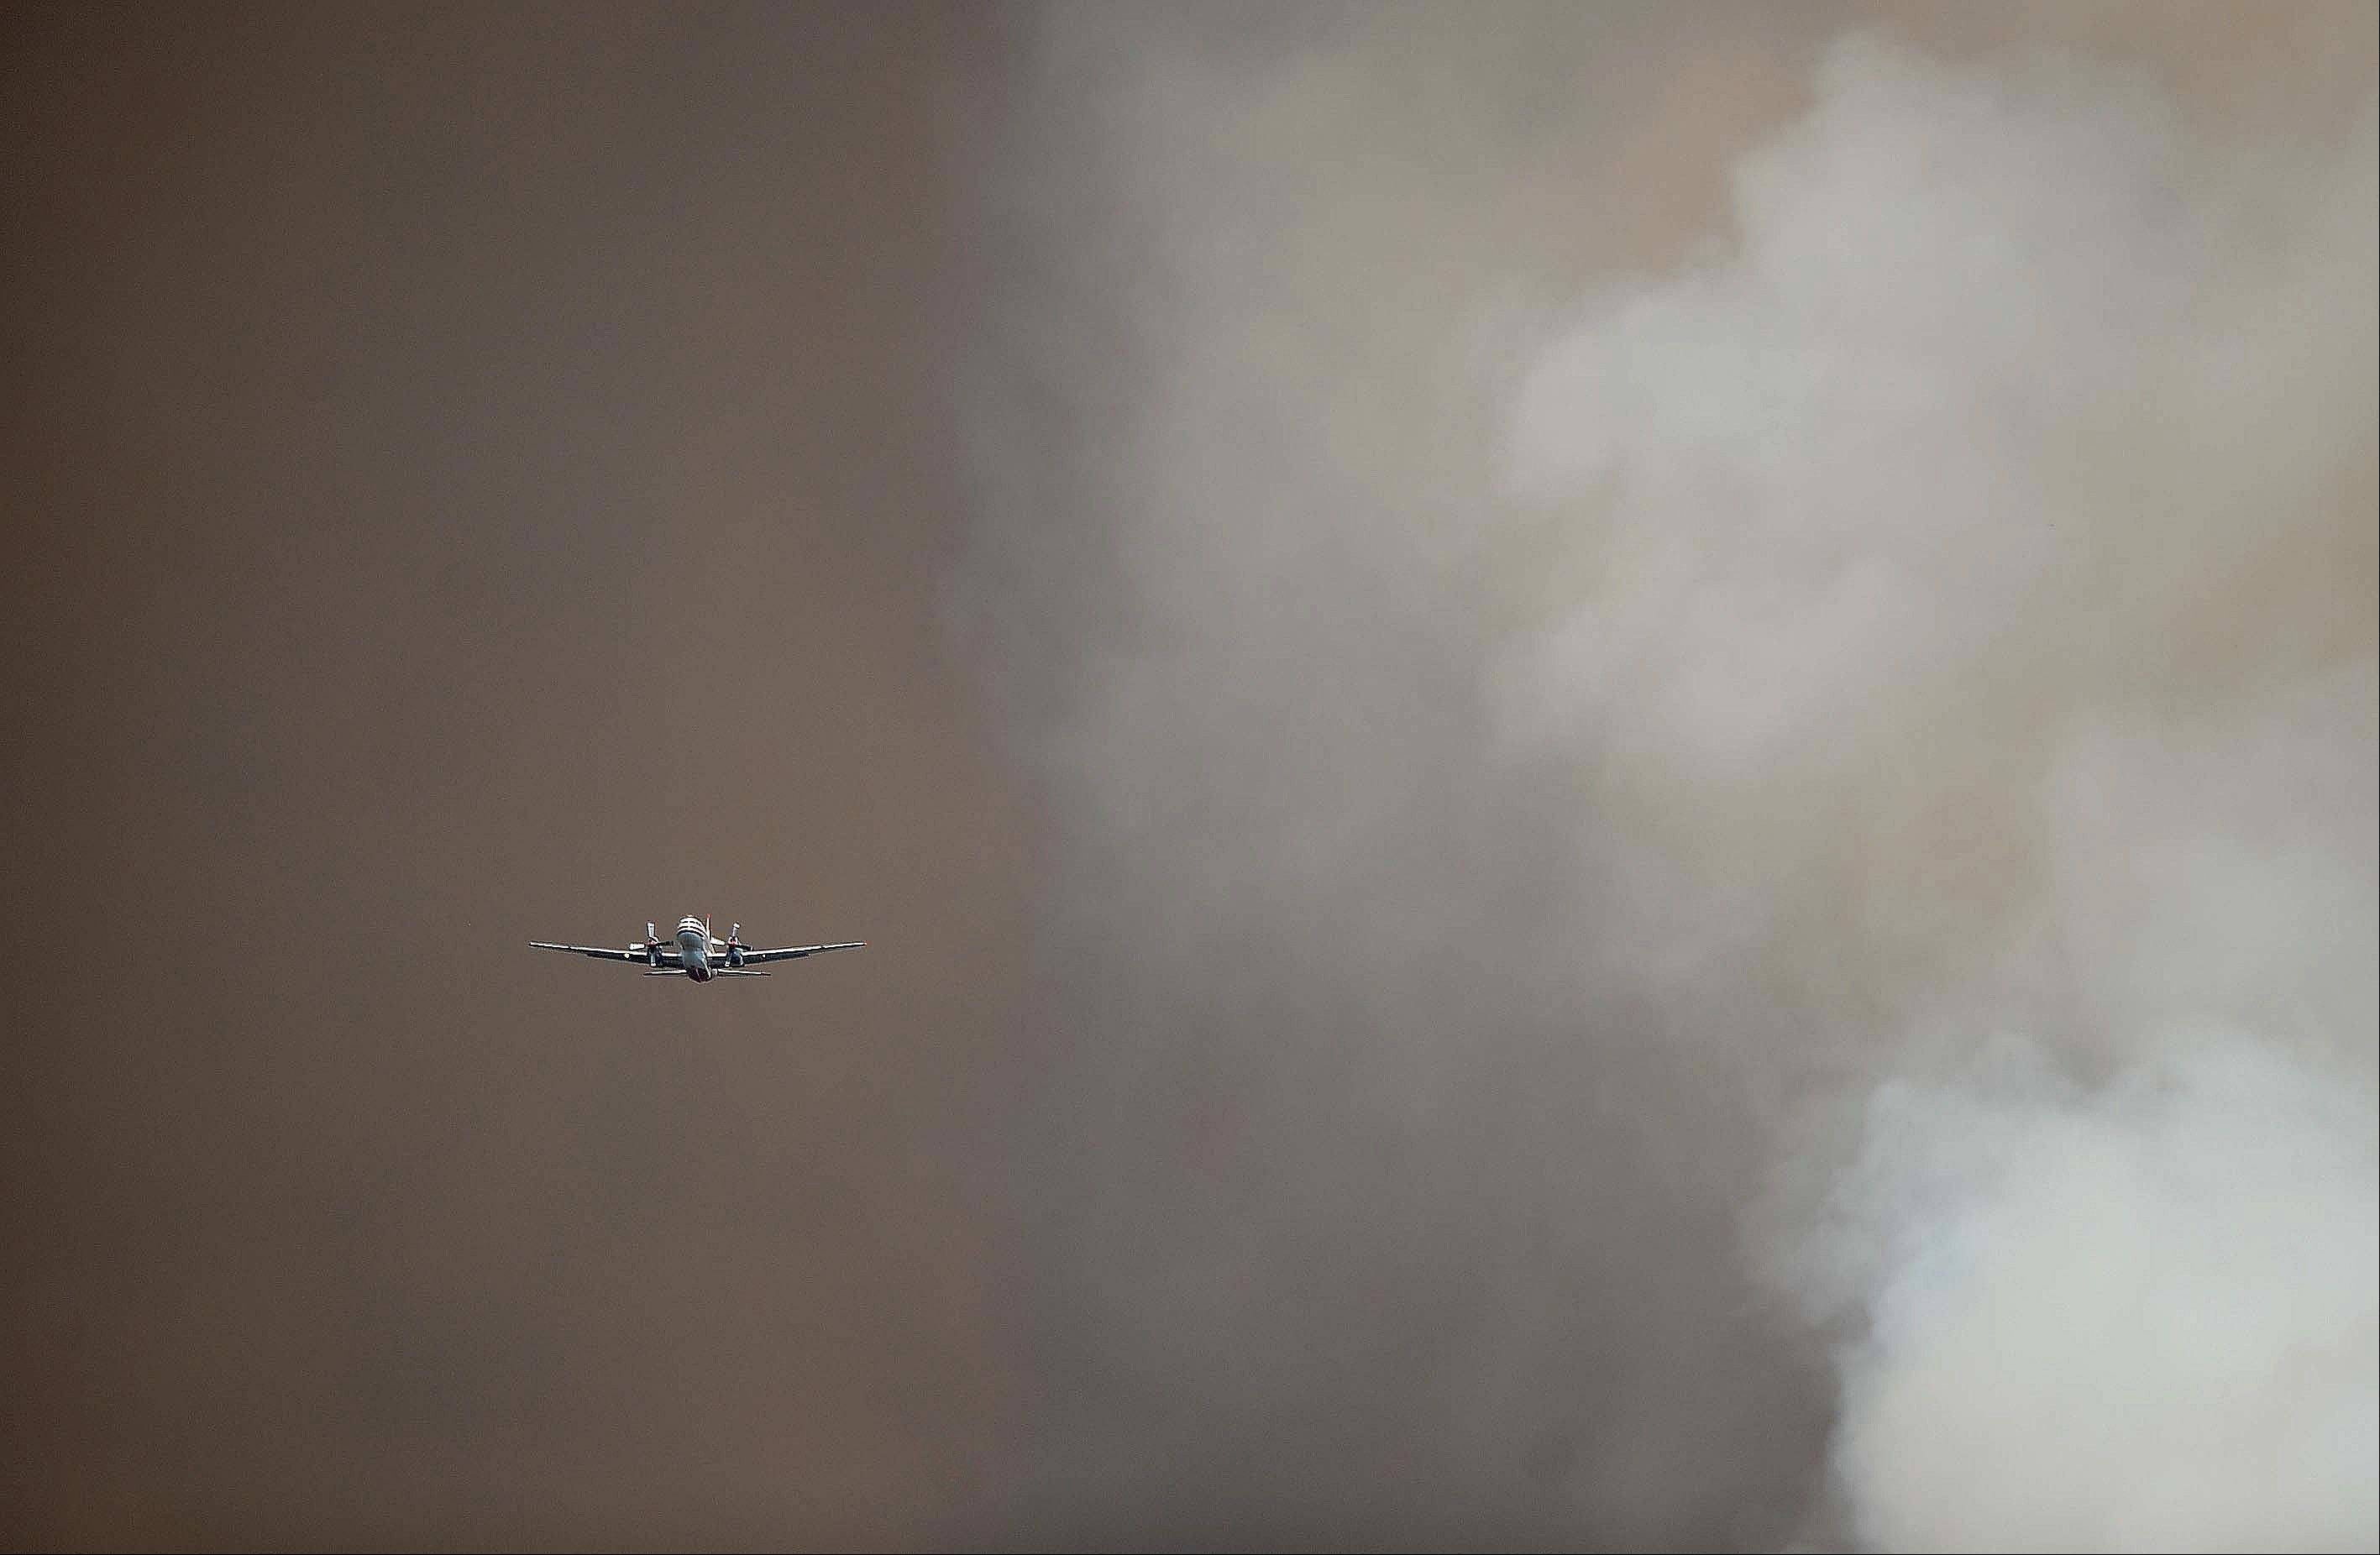 A slurry plane flies through smoke from a wildfire burning west of Manitou Springs, Colo., on Sunday, June 24, 2012. The fire erupted and grew out of control to more than 3 square miles early Sunday, prompting the evacuation of more than 11,000 residents and an unknown number of tourists.